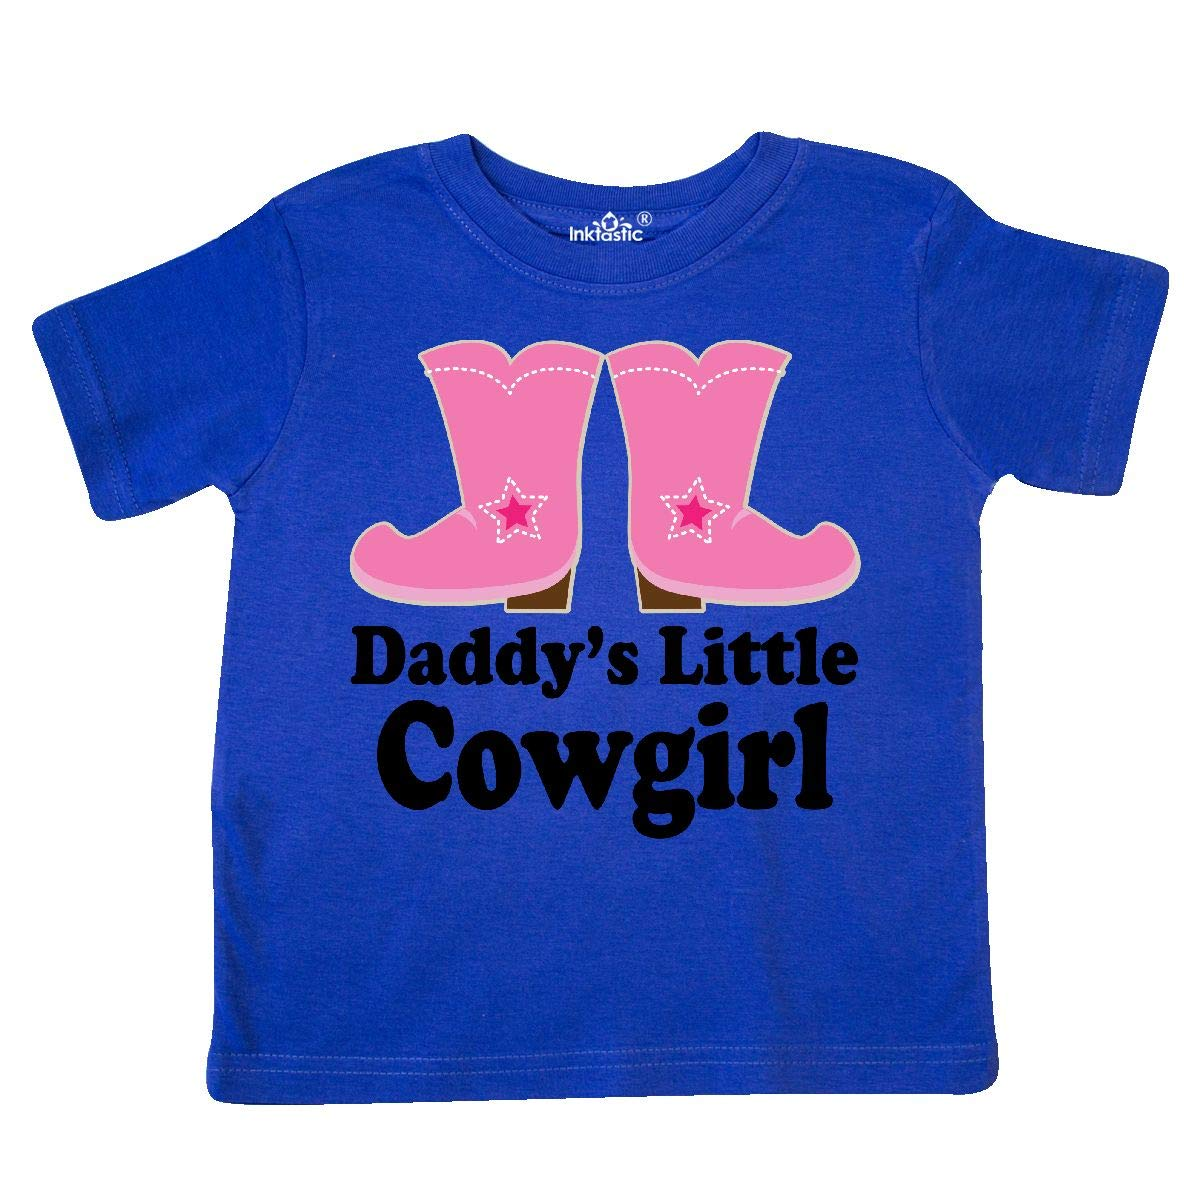 inktastic Daddys Little Cowgirl Toddler T-Shirt